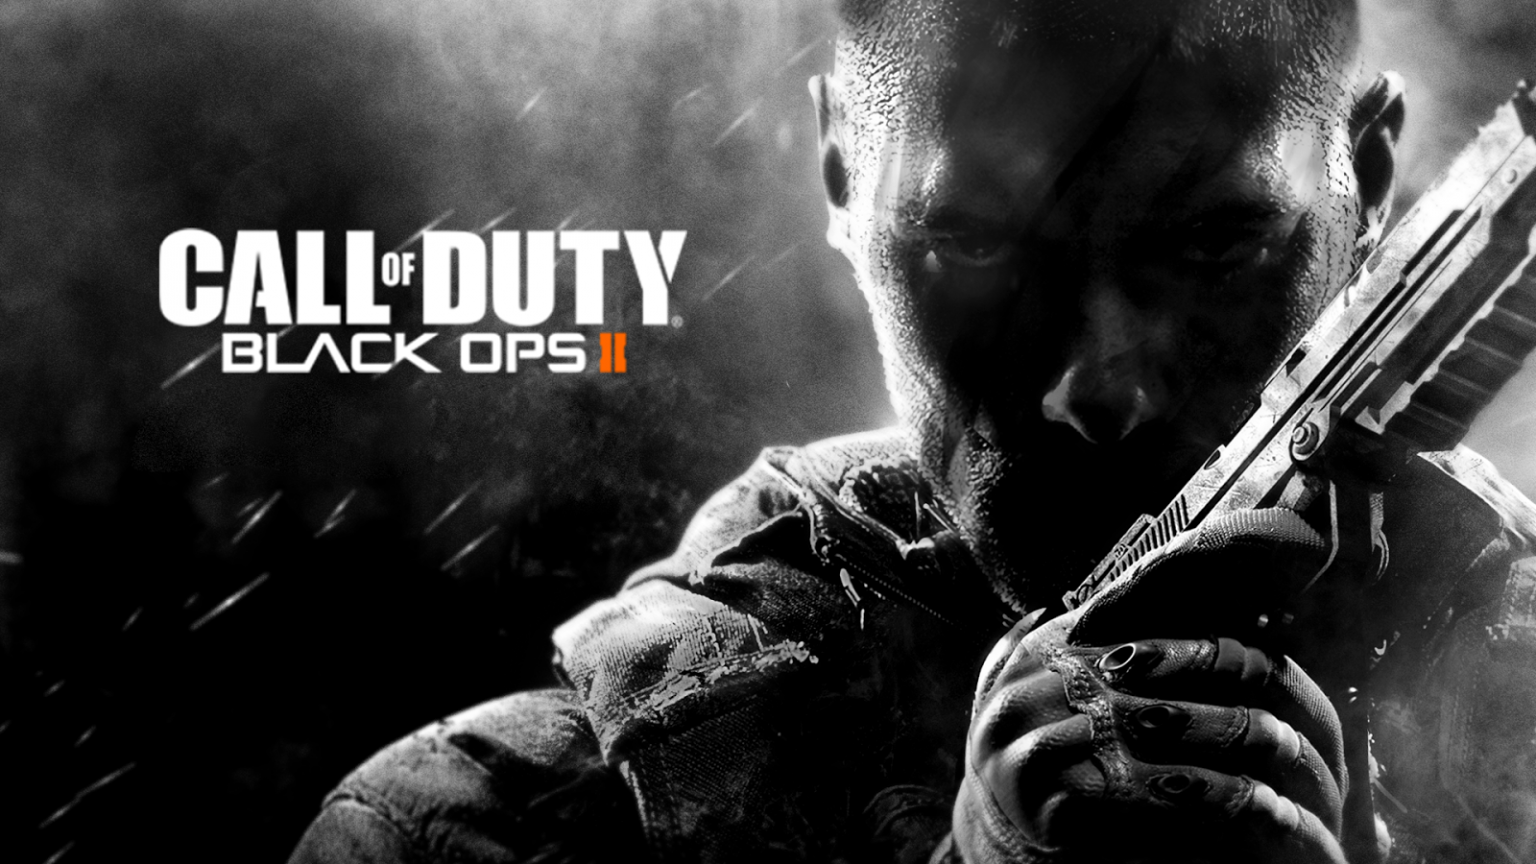 Free Download Call Of Duty Black Ops 2 Hd Wallpapers Walls720